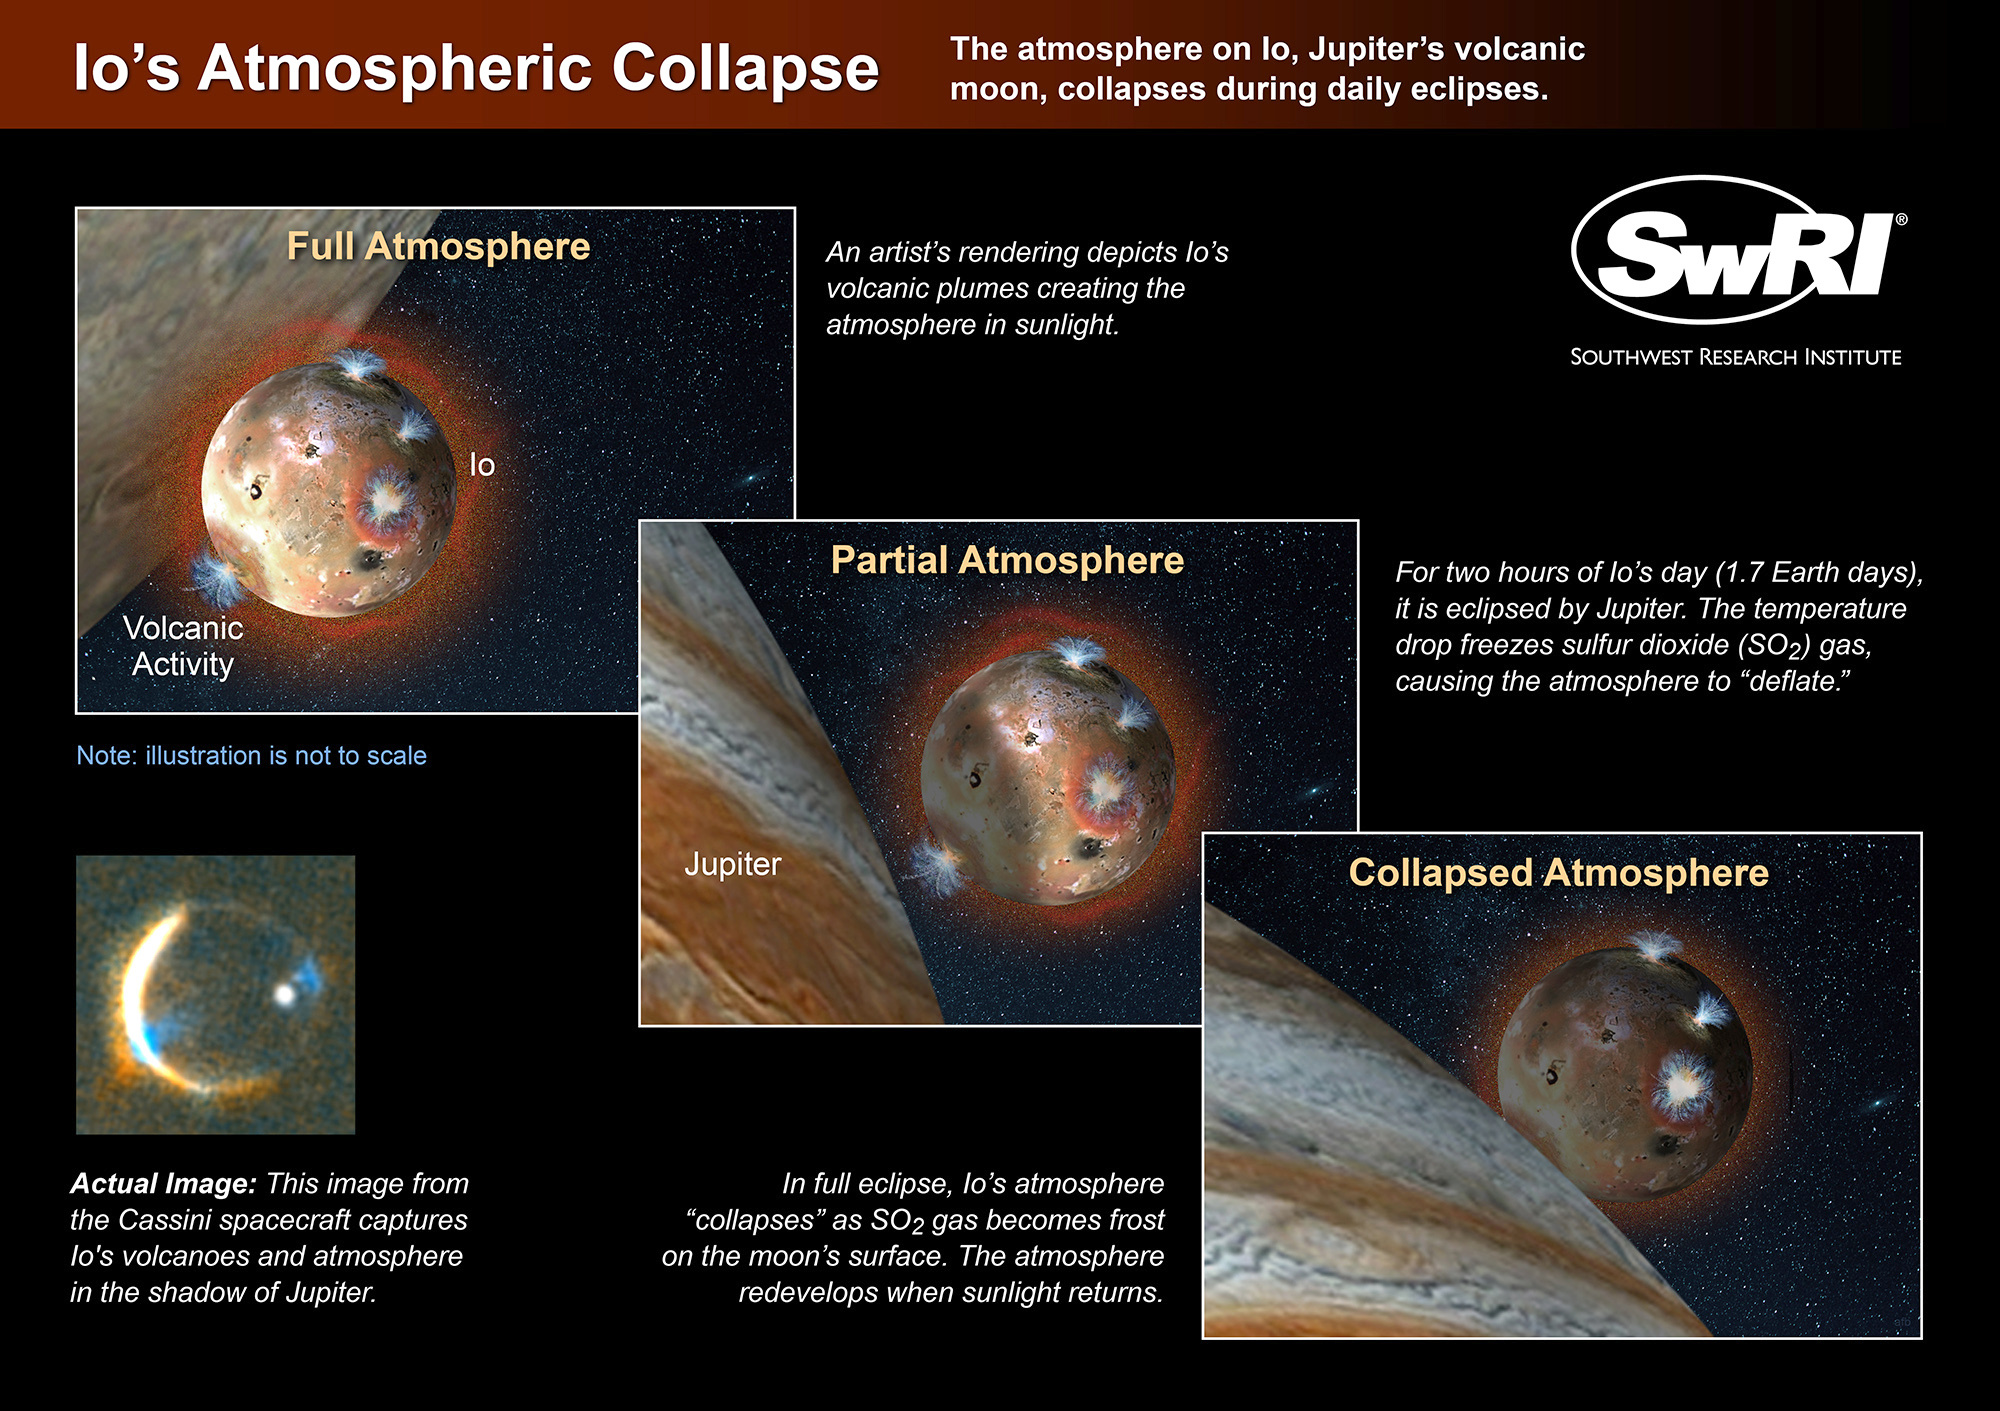 An artist's rendering depicts the atmosphere on Io, Jupiter's volcanic moon, as it collapses during daily eclipses by Jupiter's shadow. Click image for a full-size version. Illustration credit: Southwest Research Institute.